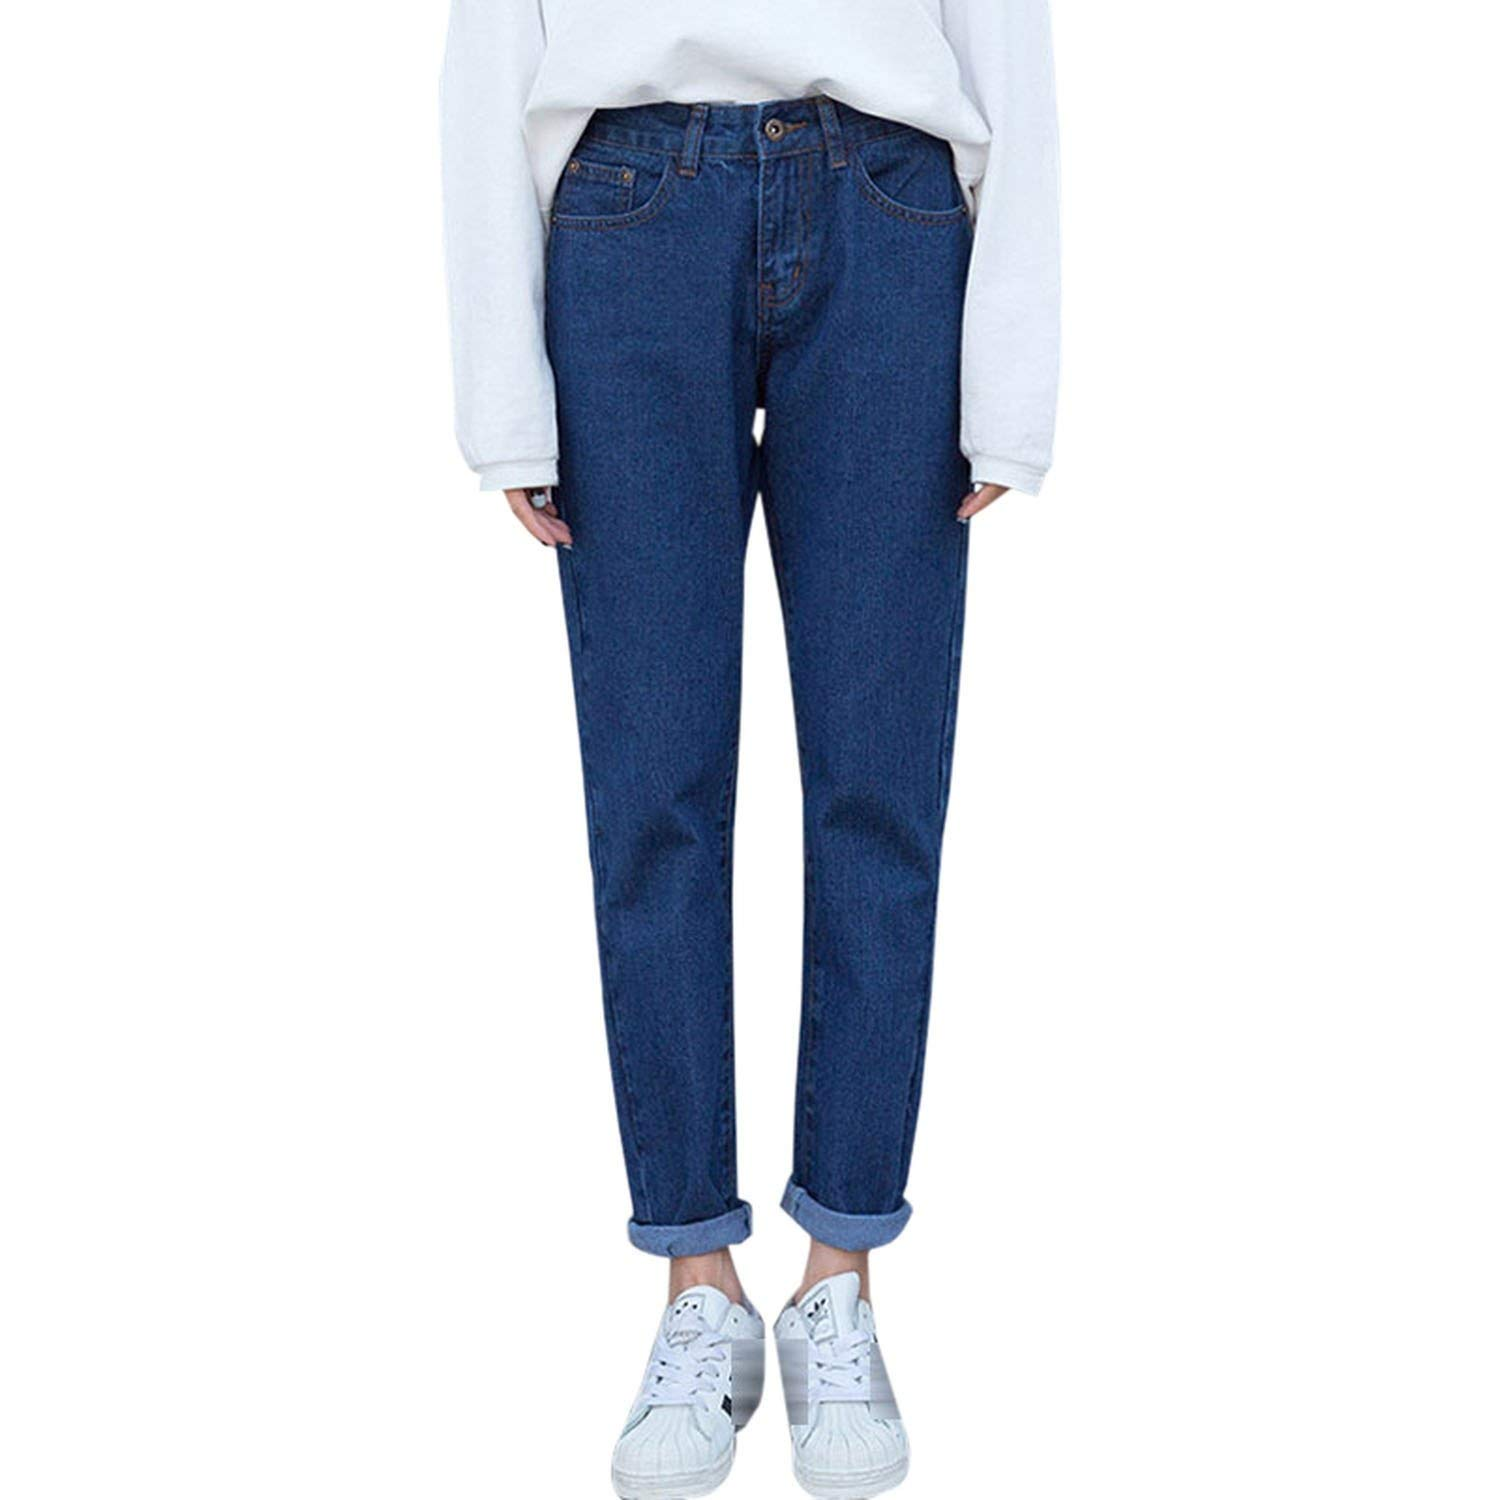 Jeans for Women High Waist Loose Trousers Jeans Casual Preppy Style